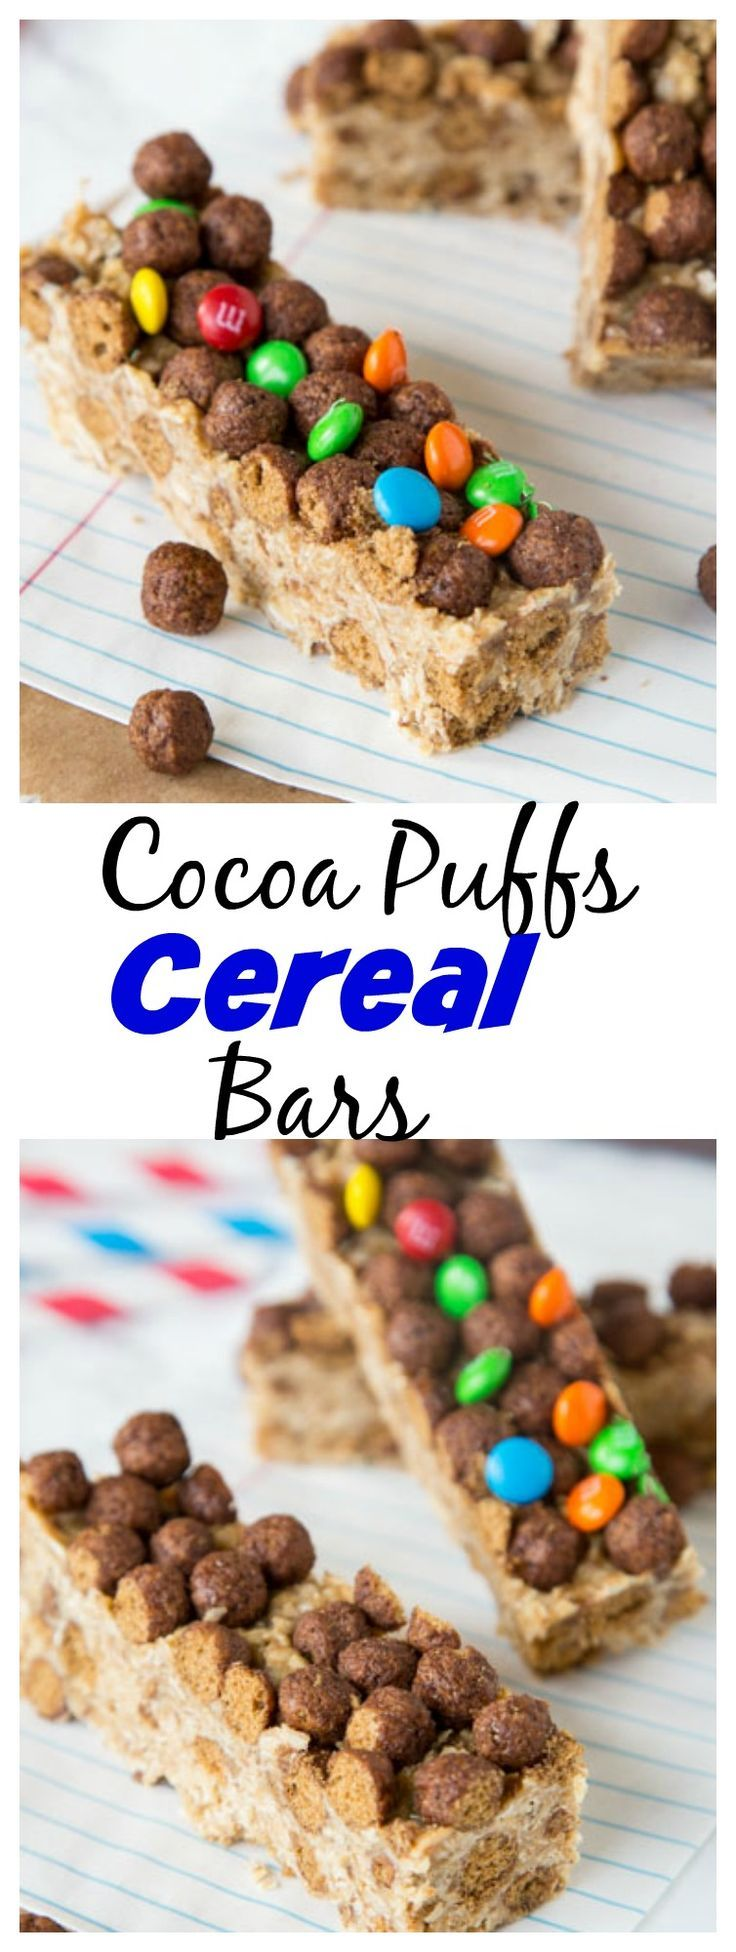 Cocoa puffs cereal bars a great no bake bar that you can